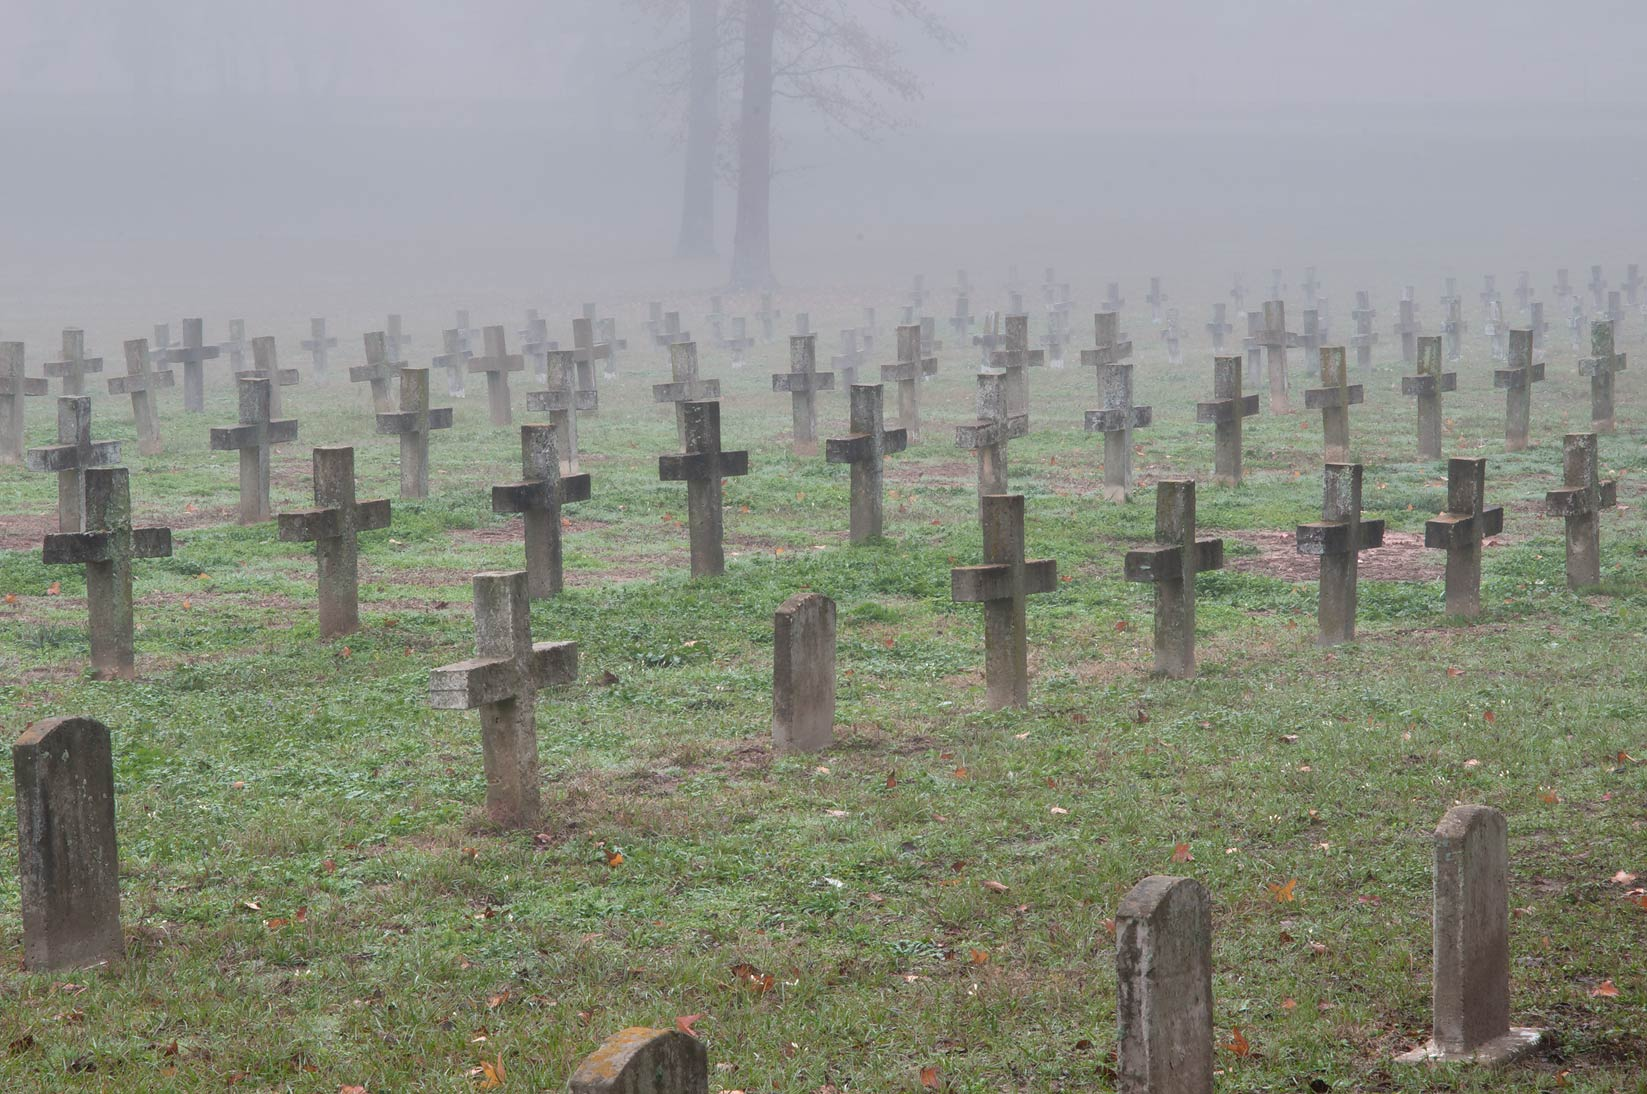 Lines of crosses of TDCJ Captain Joe Byrd...Cemetery in fog. Huntsville, Texas